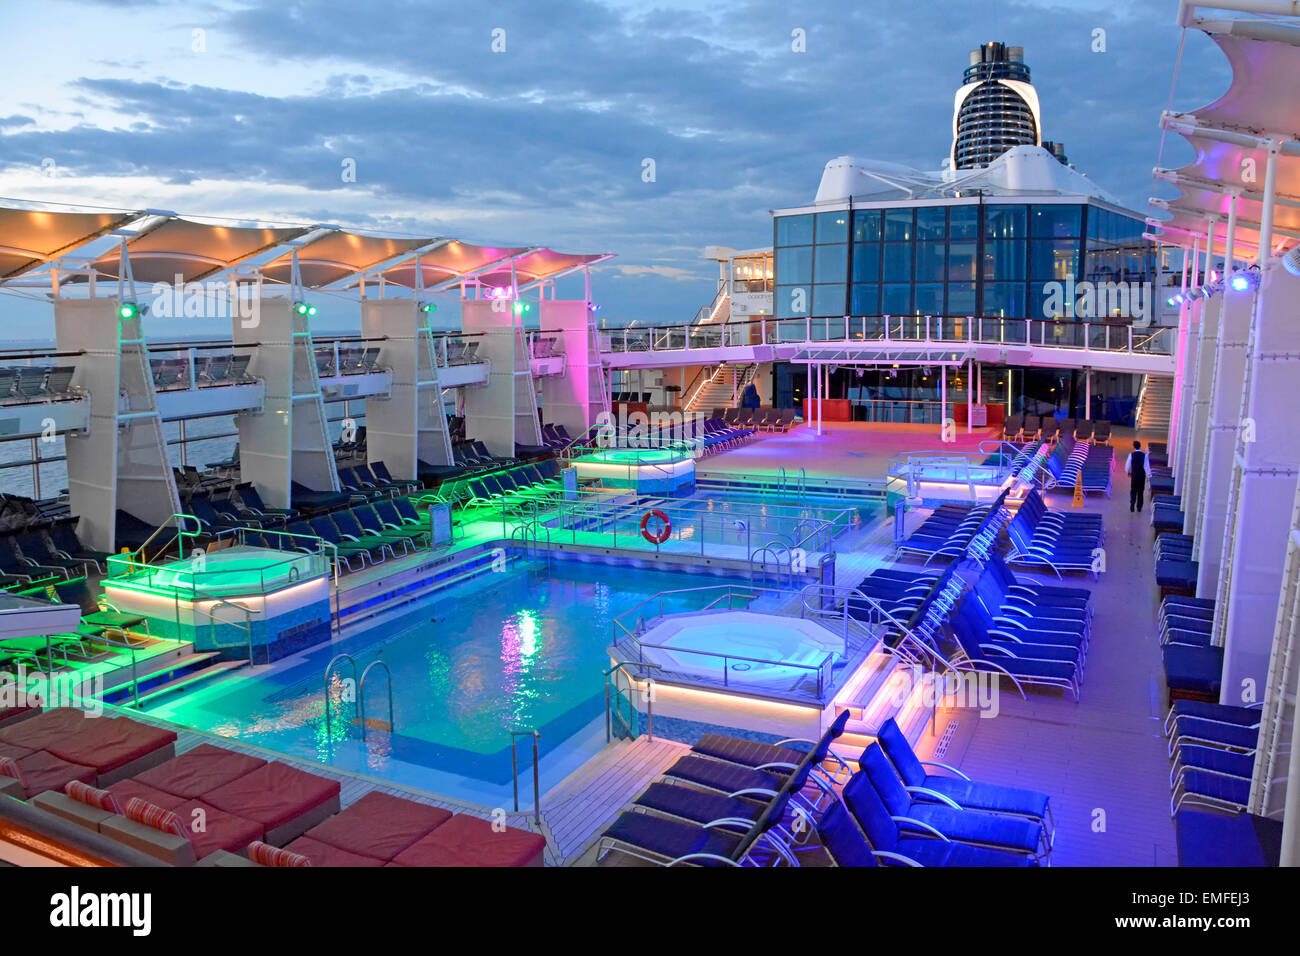 Flood lighting on cruise ship pool deck at end of day with passengers below decks for evening meal (for day view - Stock Image